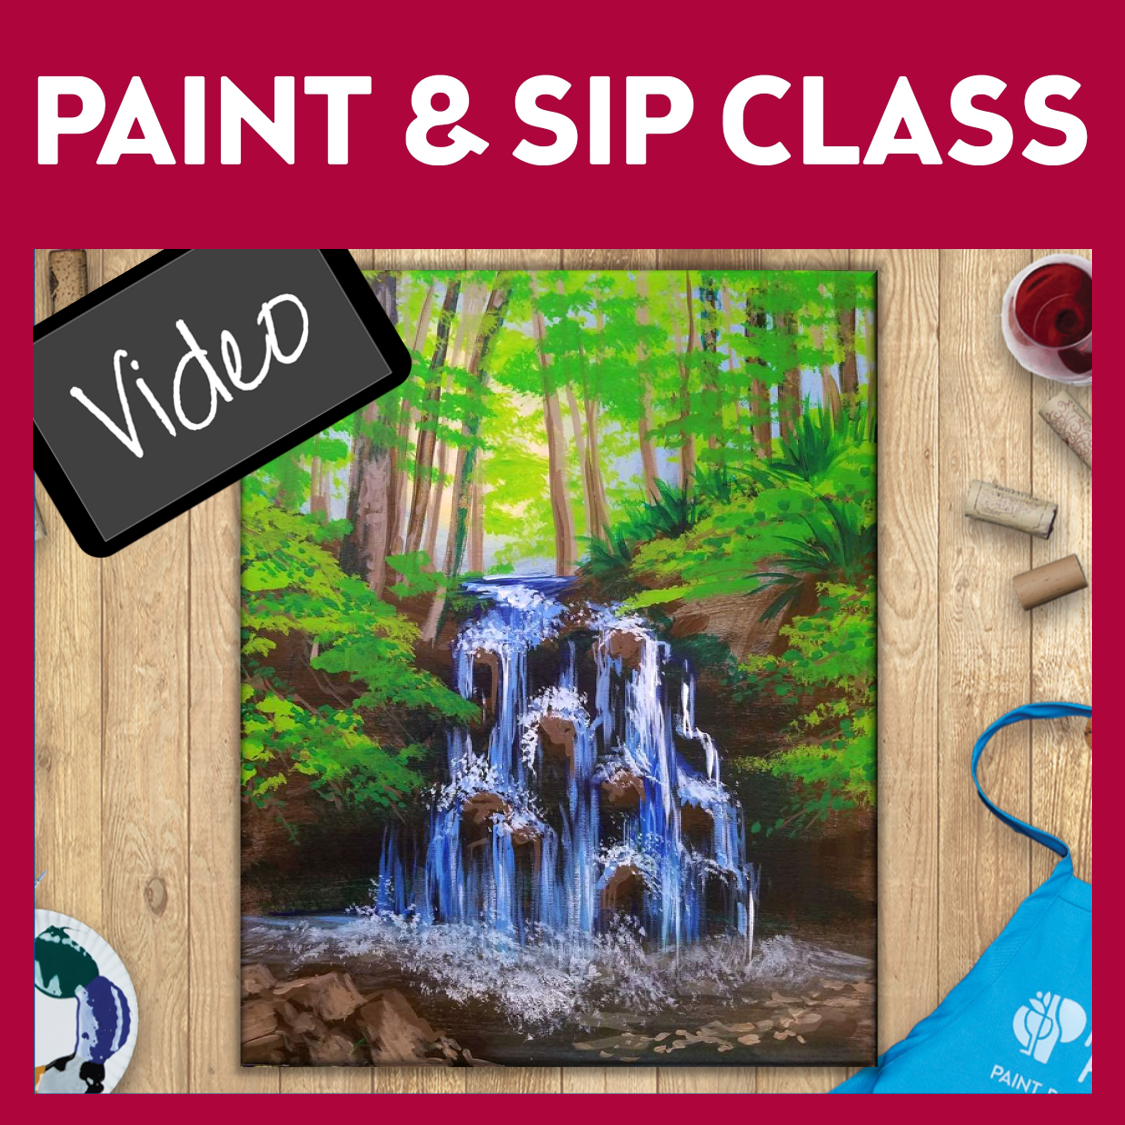 https://studio.pinotspalette.com/valencia/images/green%20forest%20falls.png